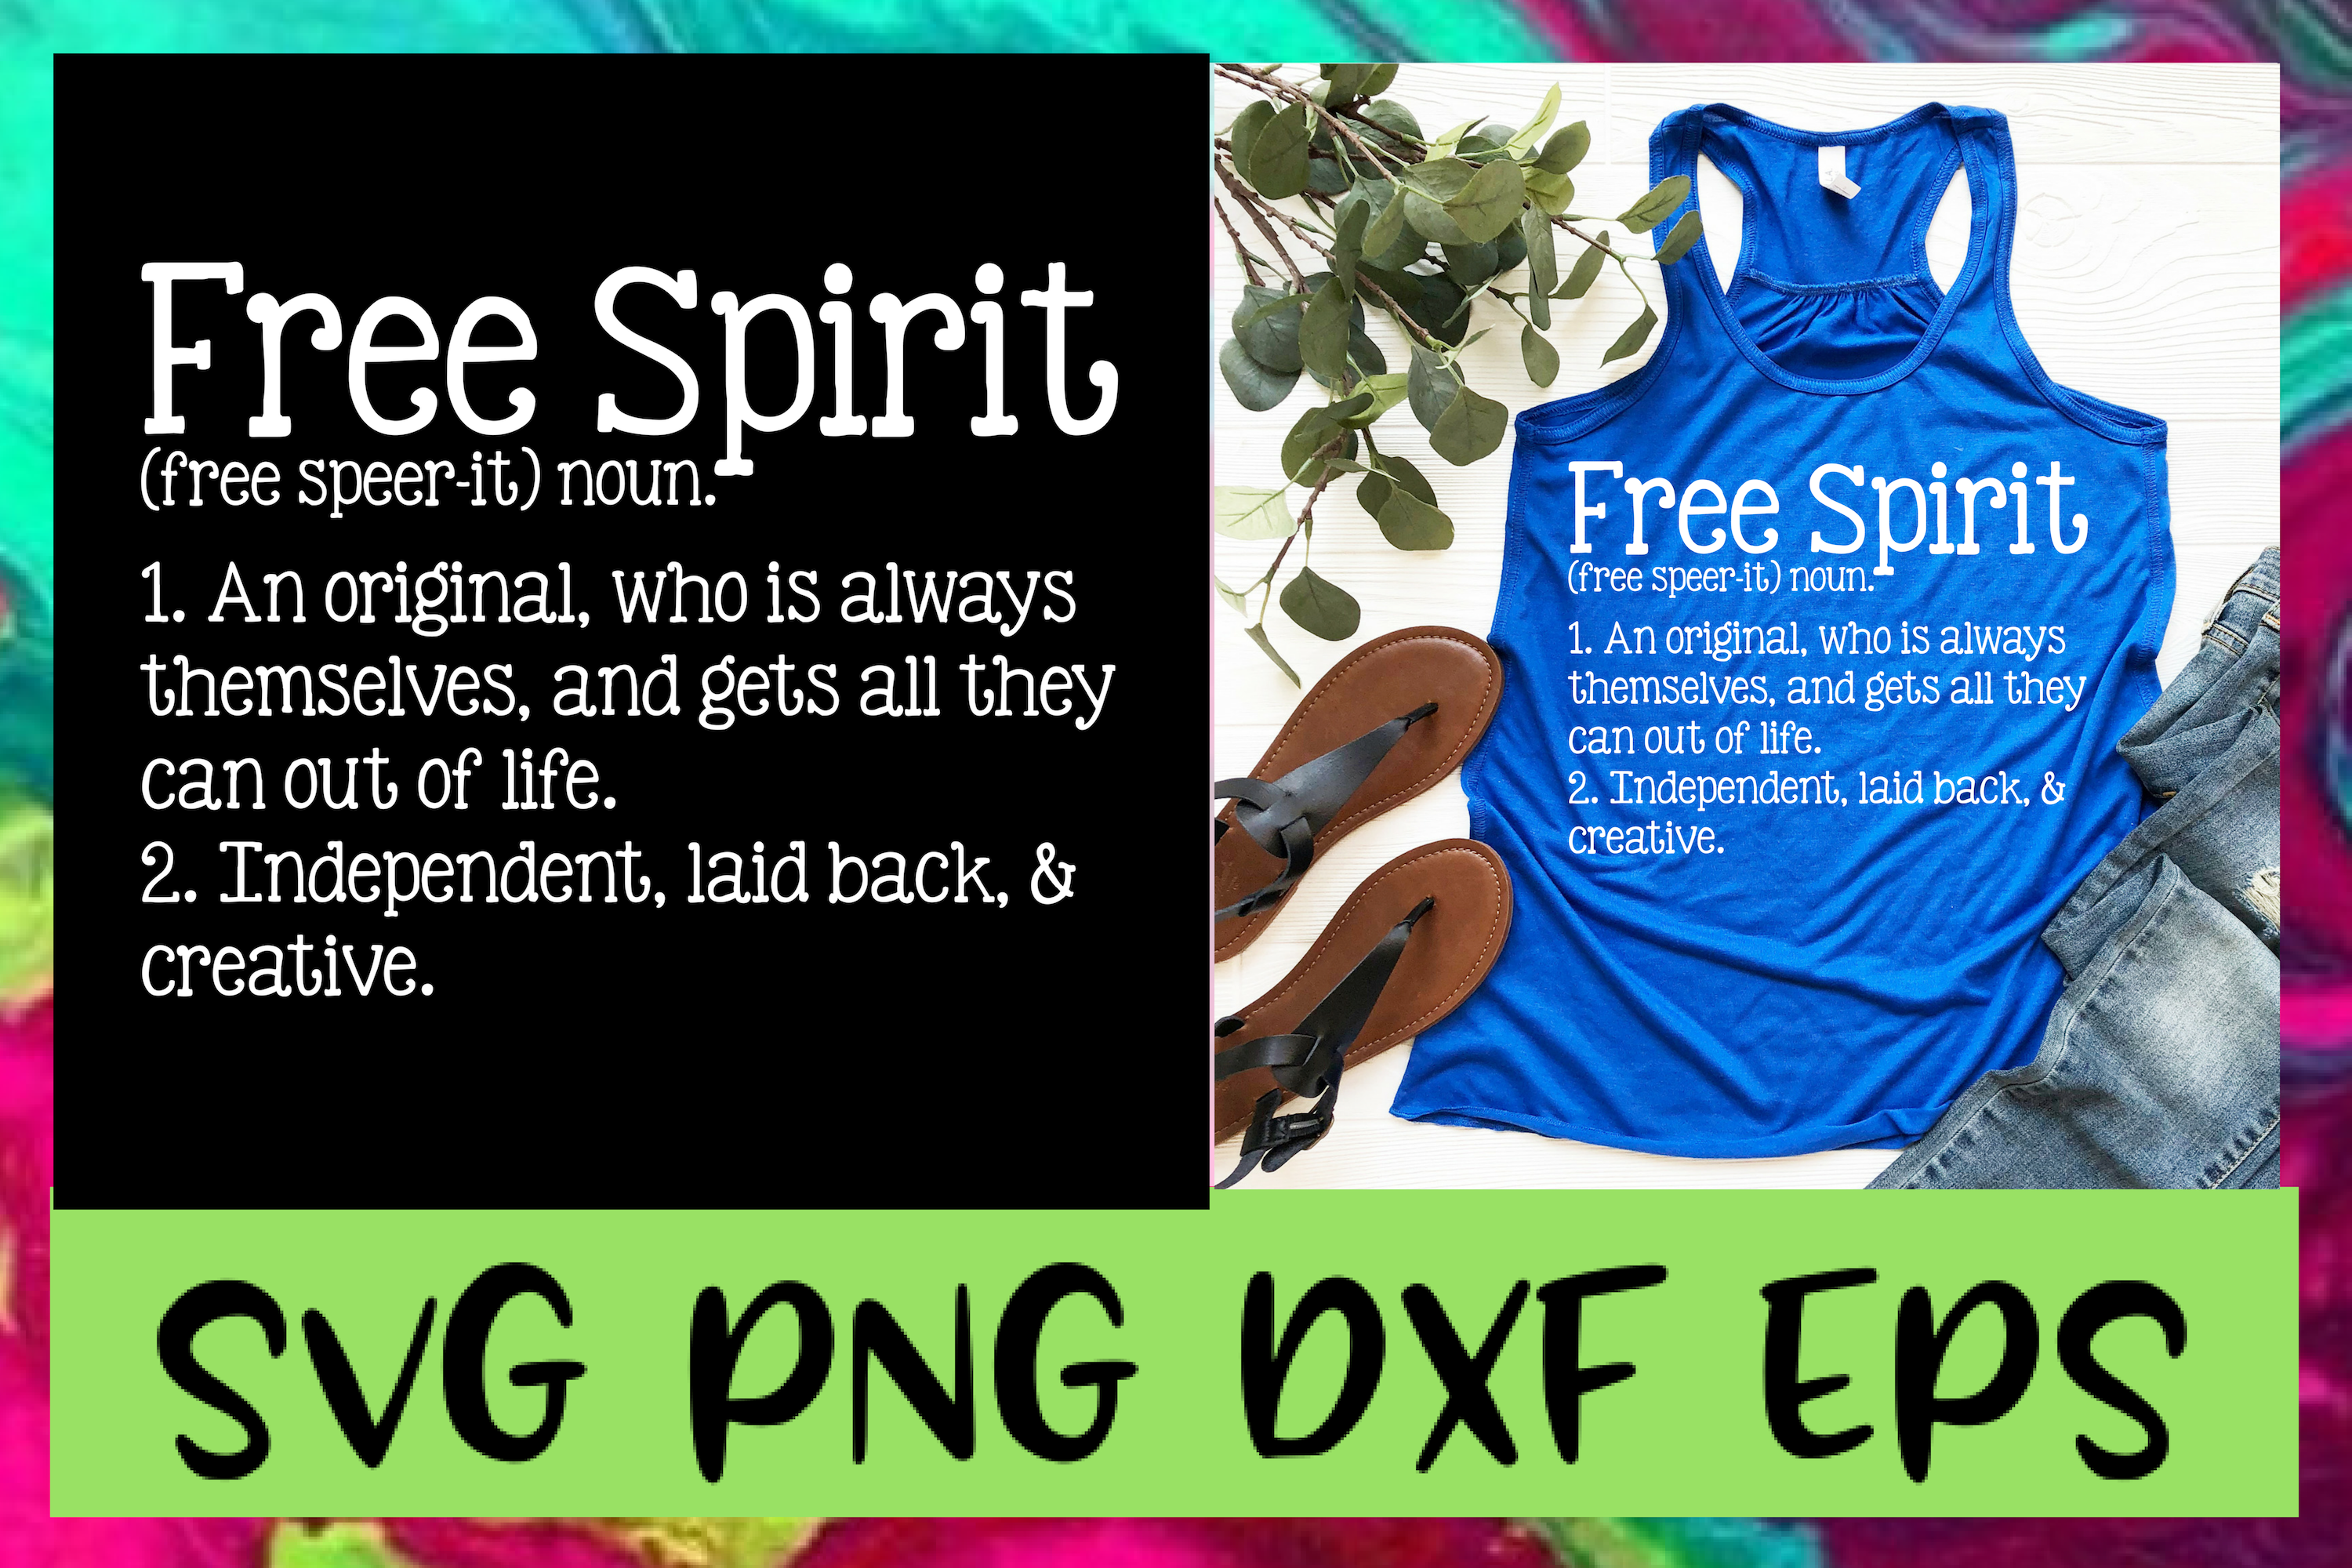 Free Spirit Definition SVG PNG DXF & EPS Design Files example image 1